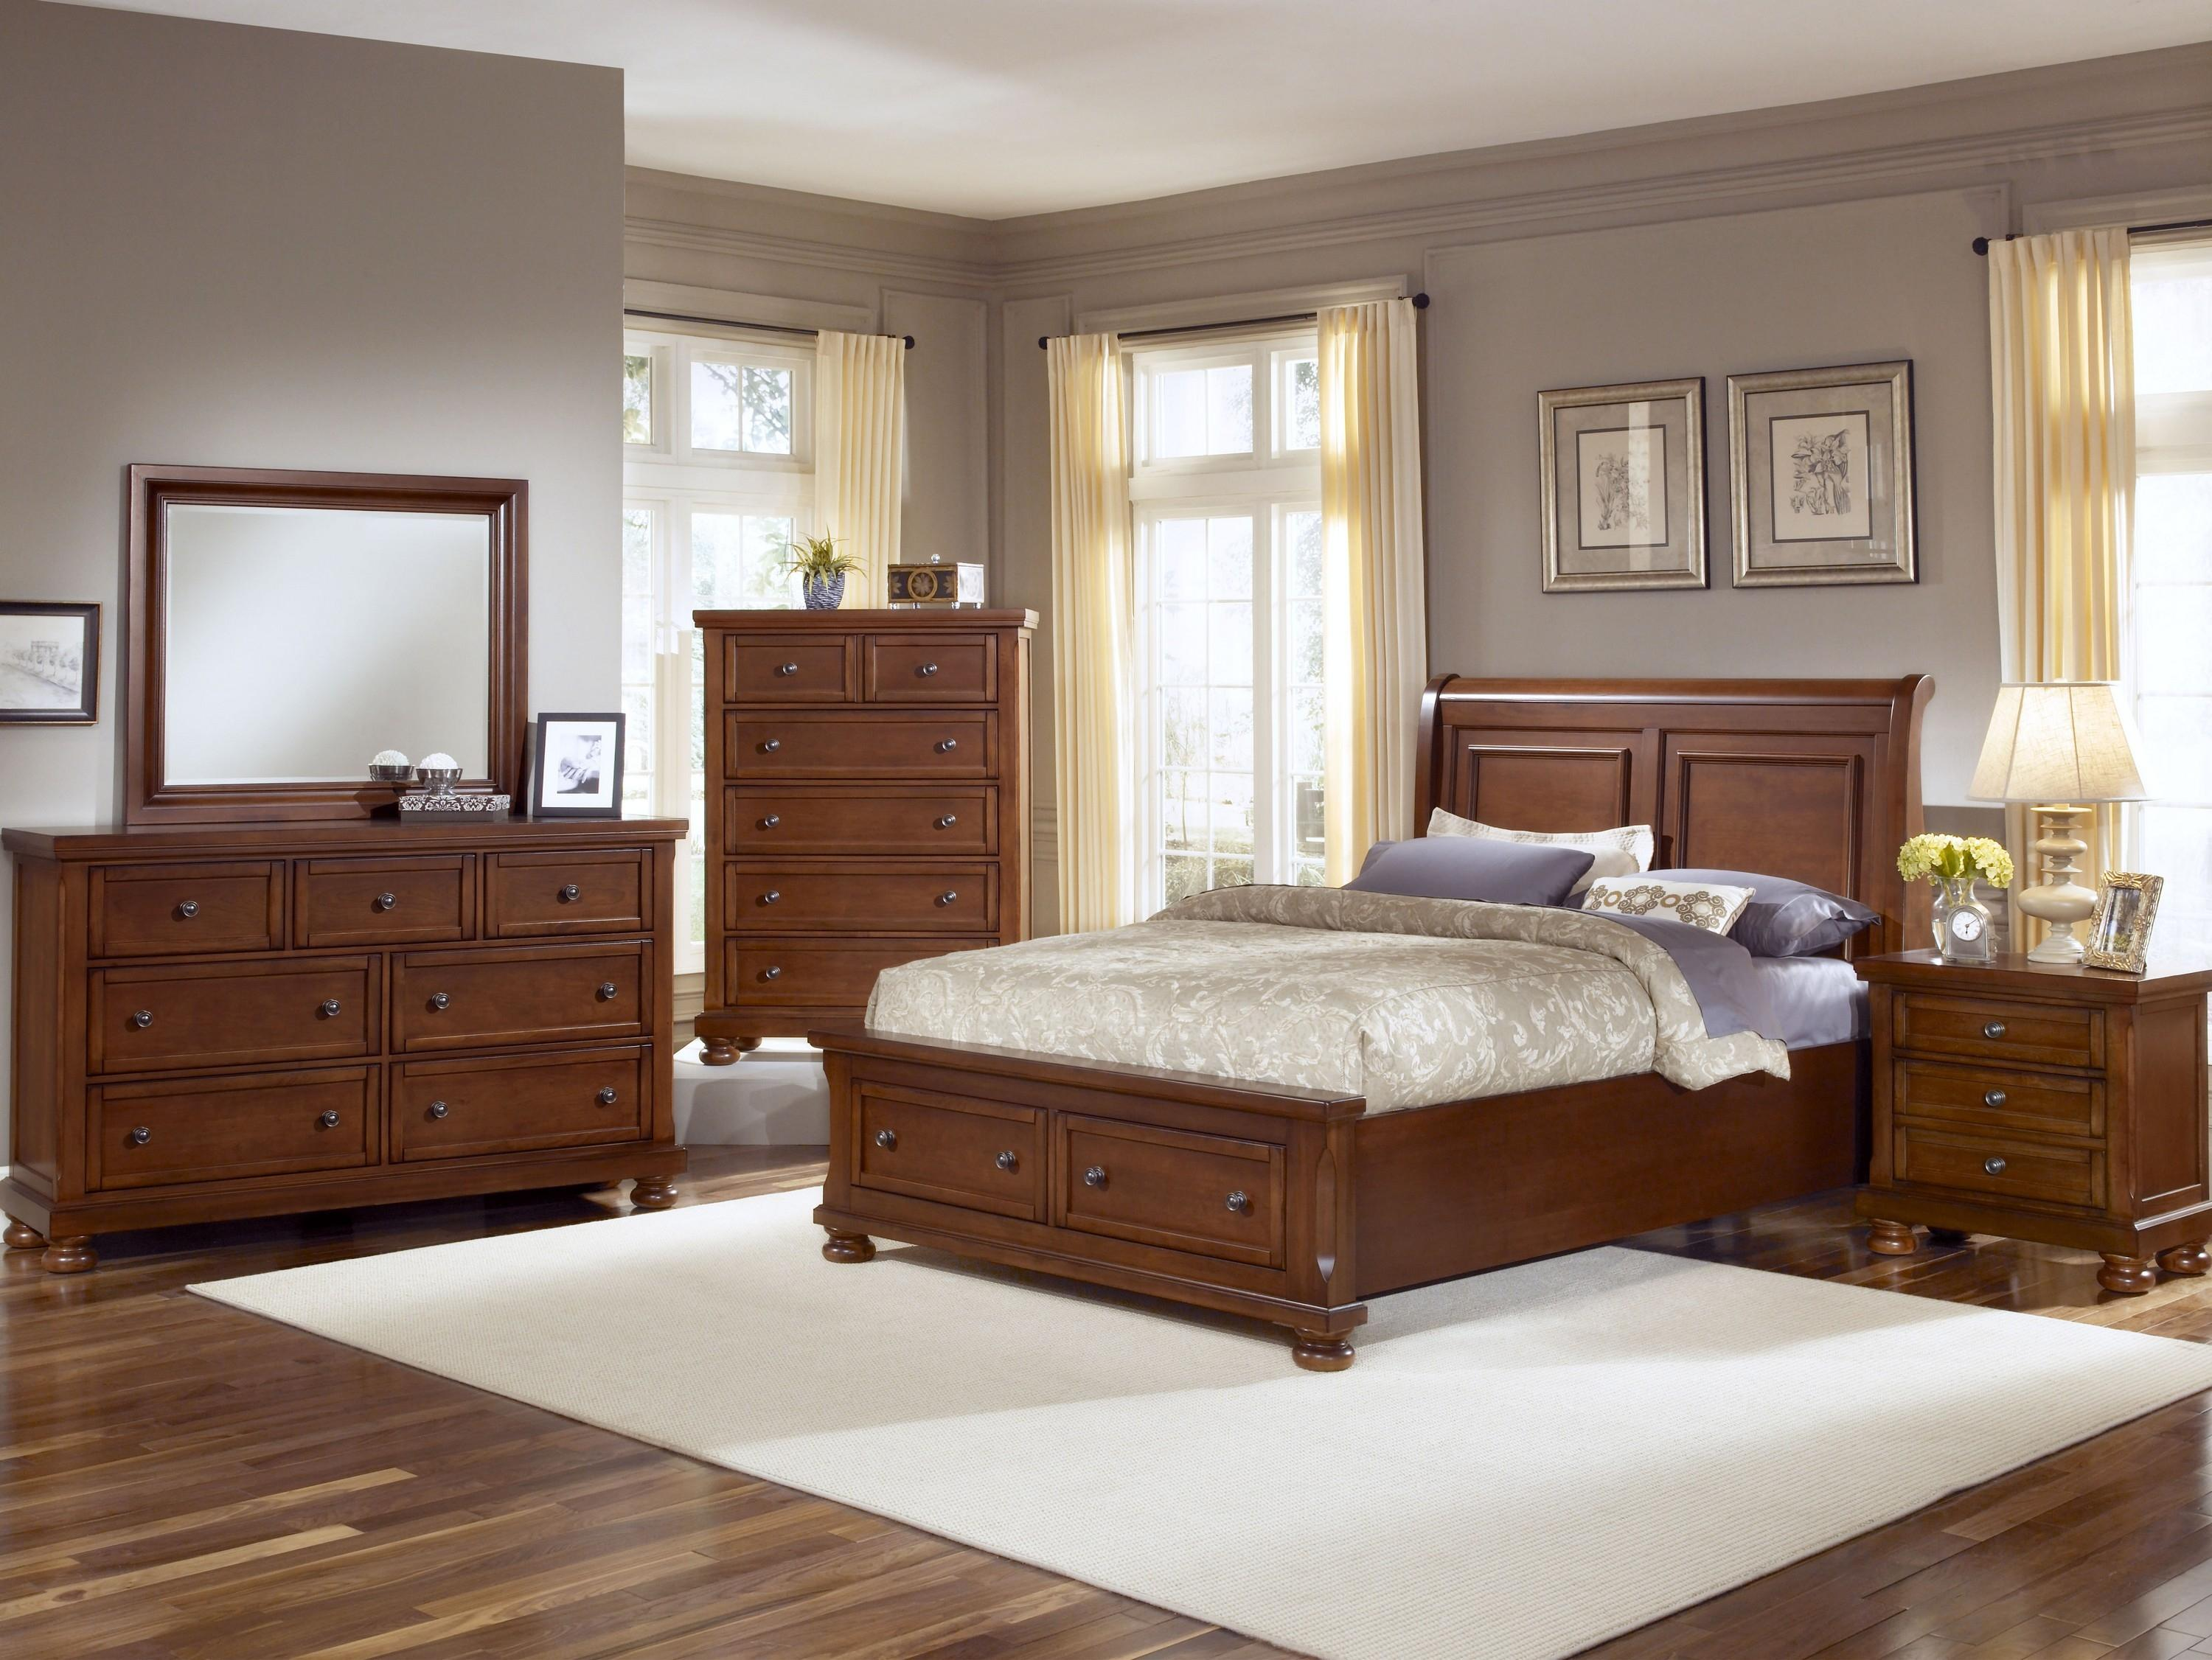 vaughan bassett reflections king storage bed with sleigh reflections king mansion storage bed in ebony by vaughan